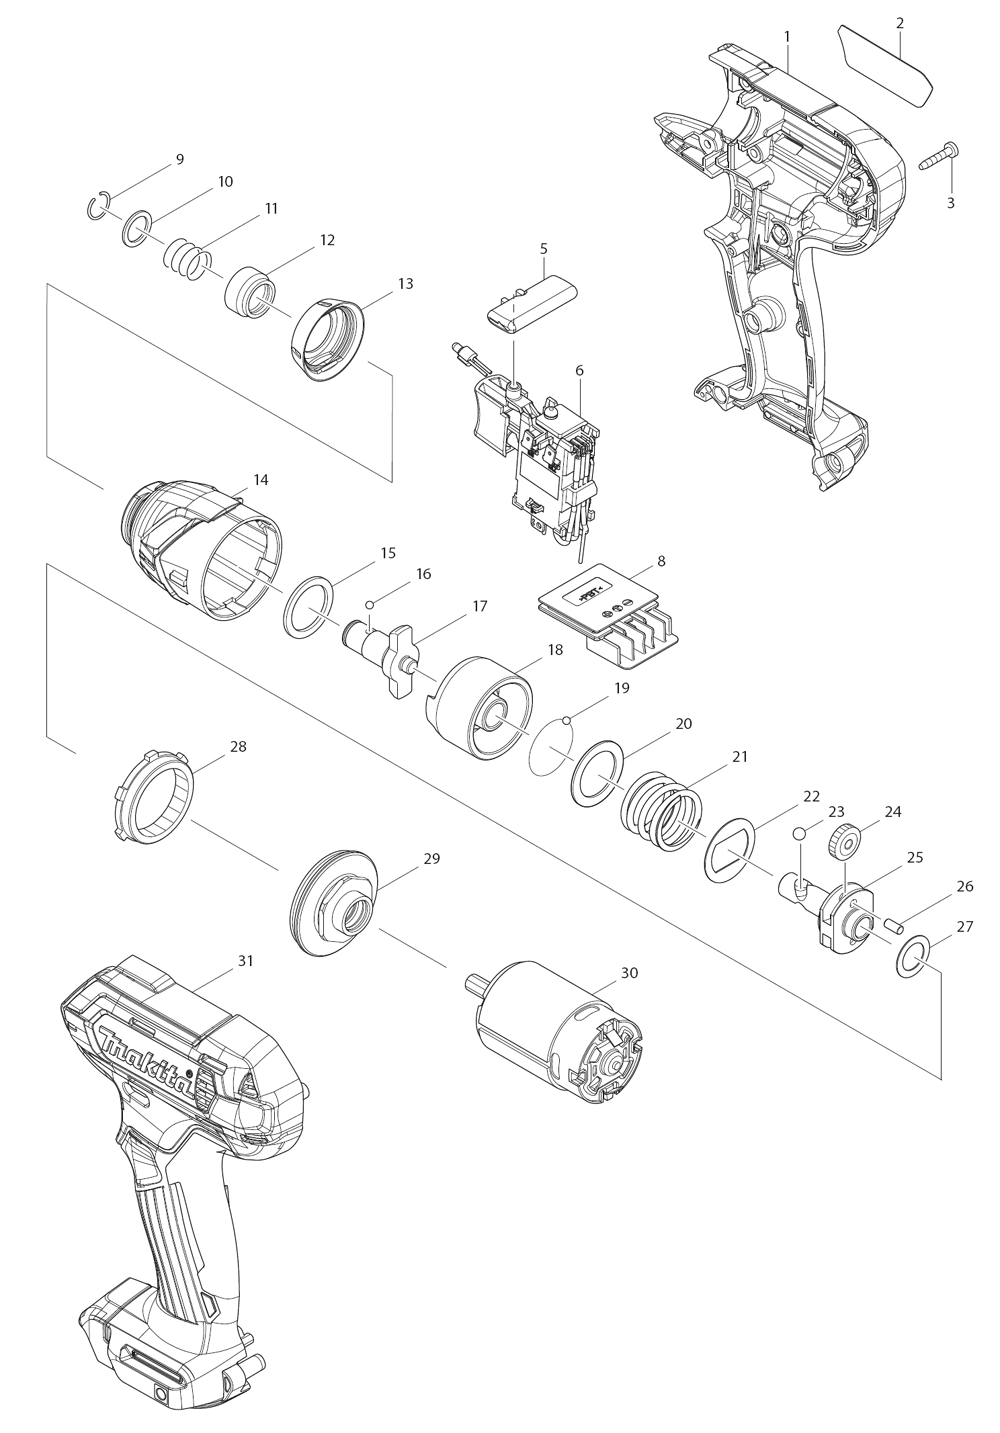 Replacement Tool Parts | Skil 2238 Type-1 Impact Wrench Parts Diagram